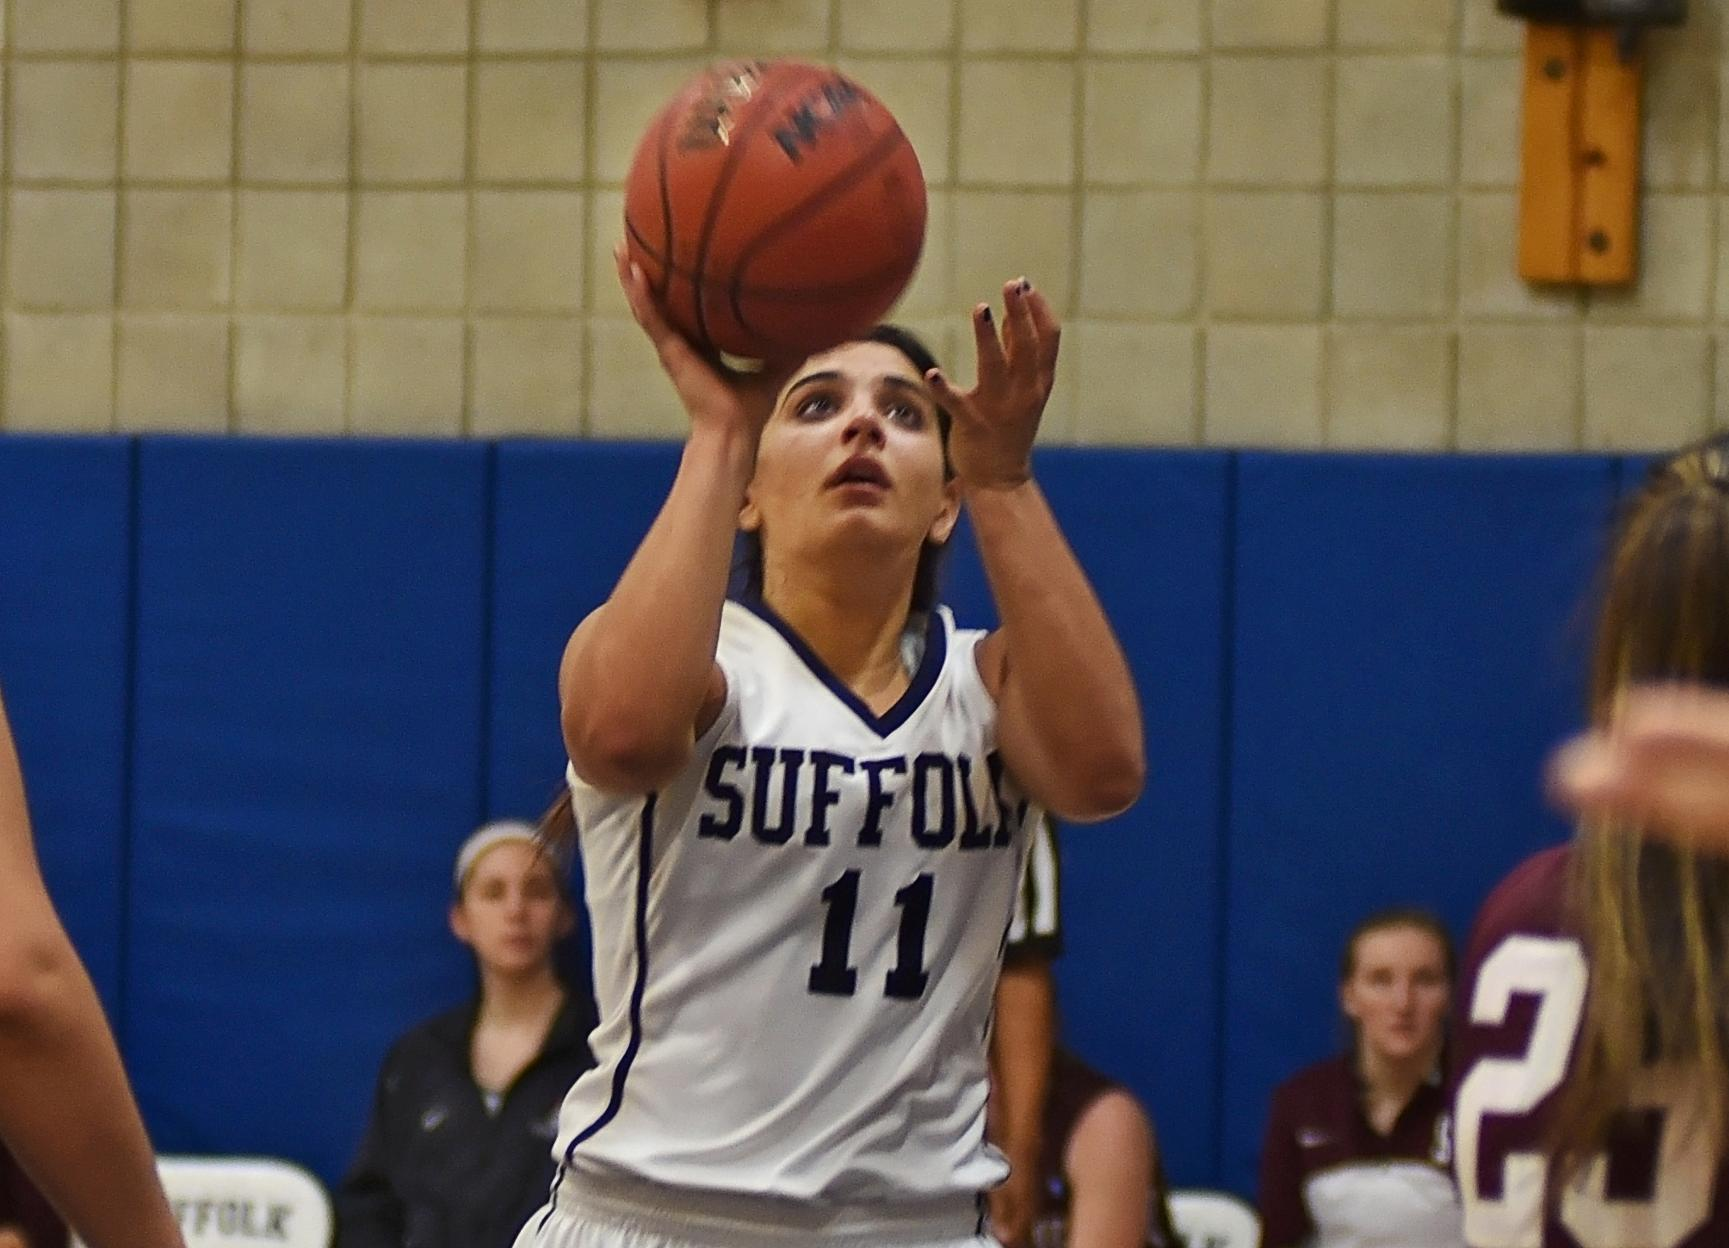 Campellone's Double-Double Leads Women's Basketball to 3rd Straight Win in GNAC Opener